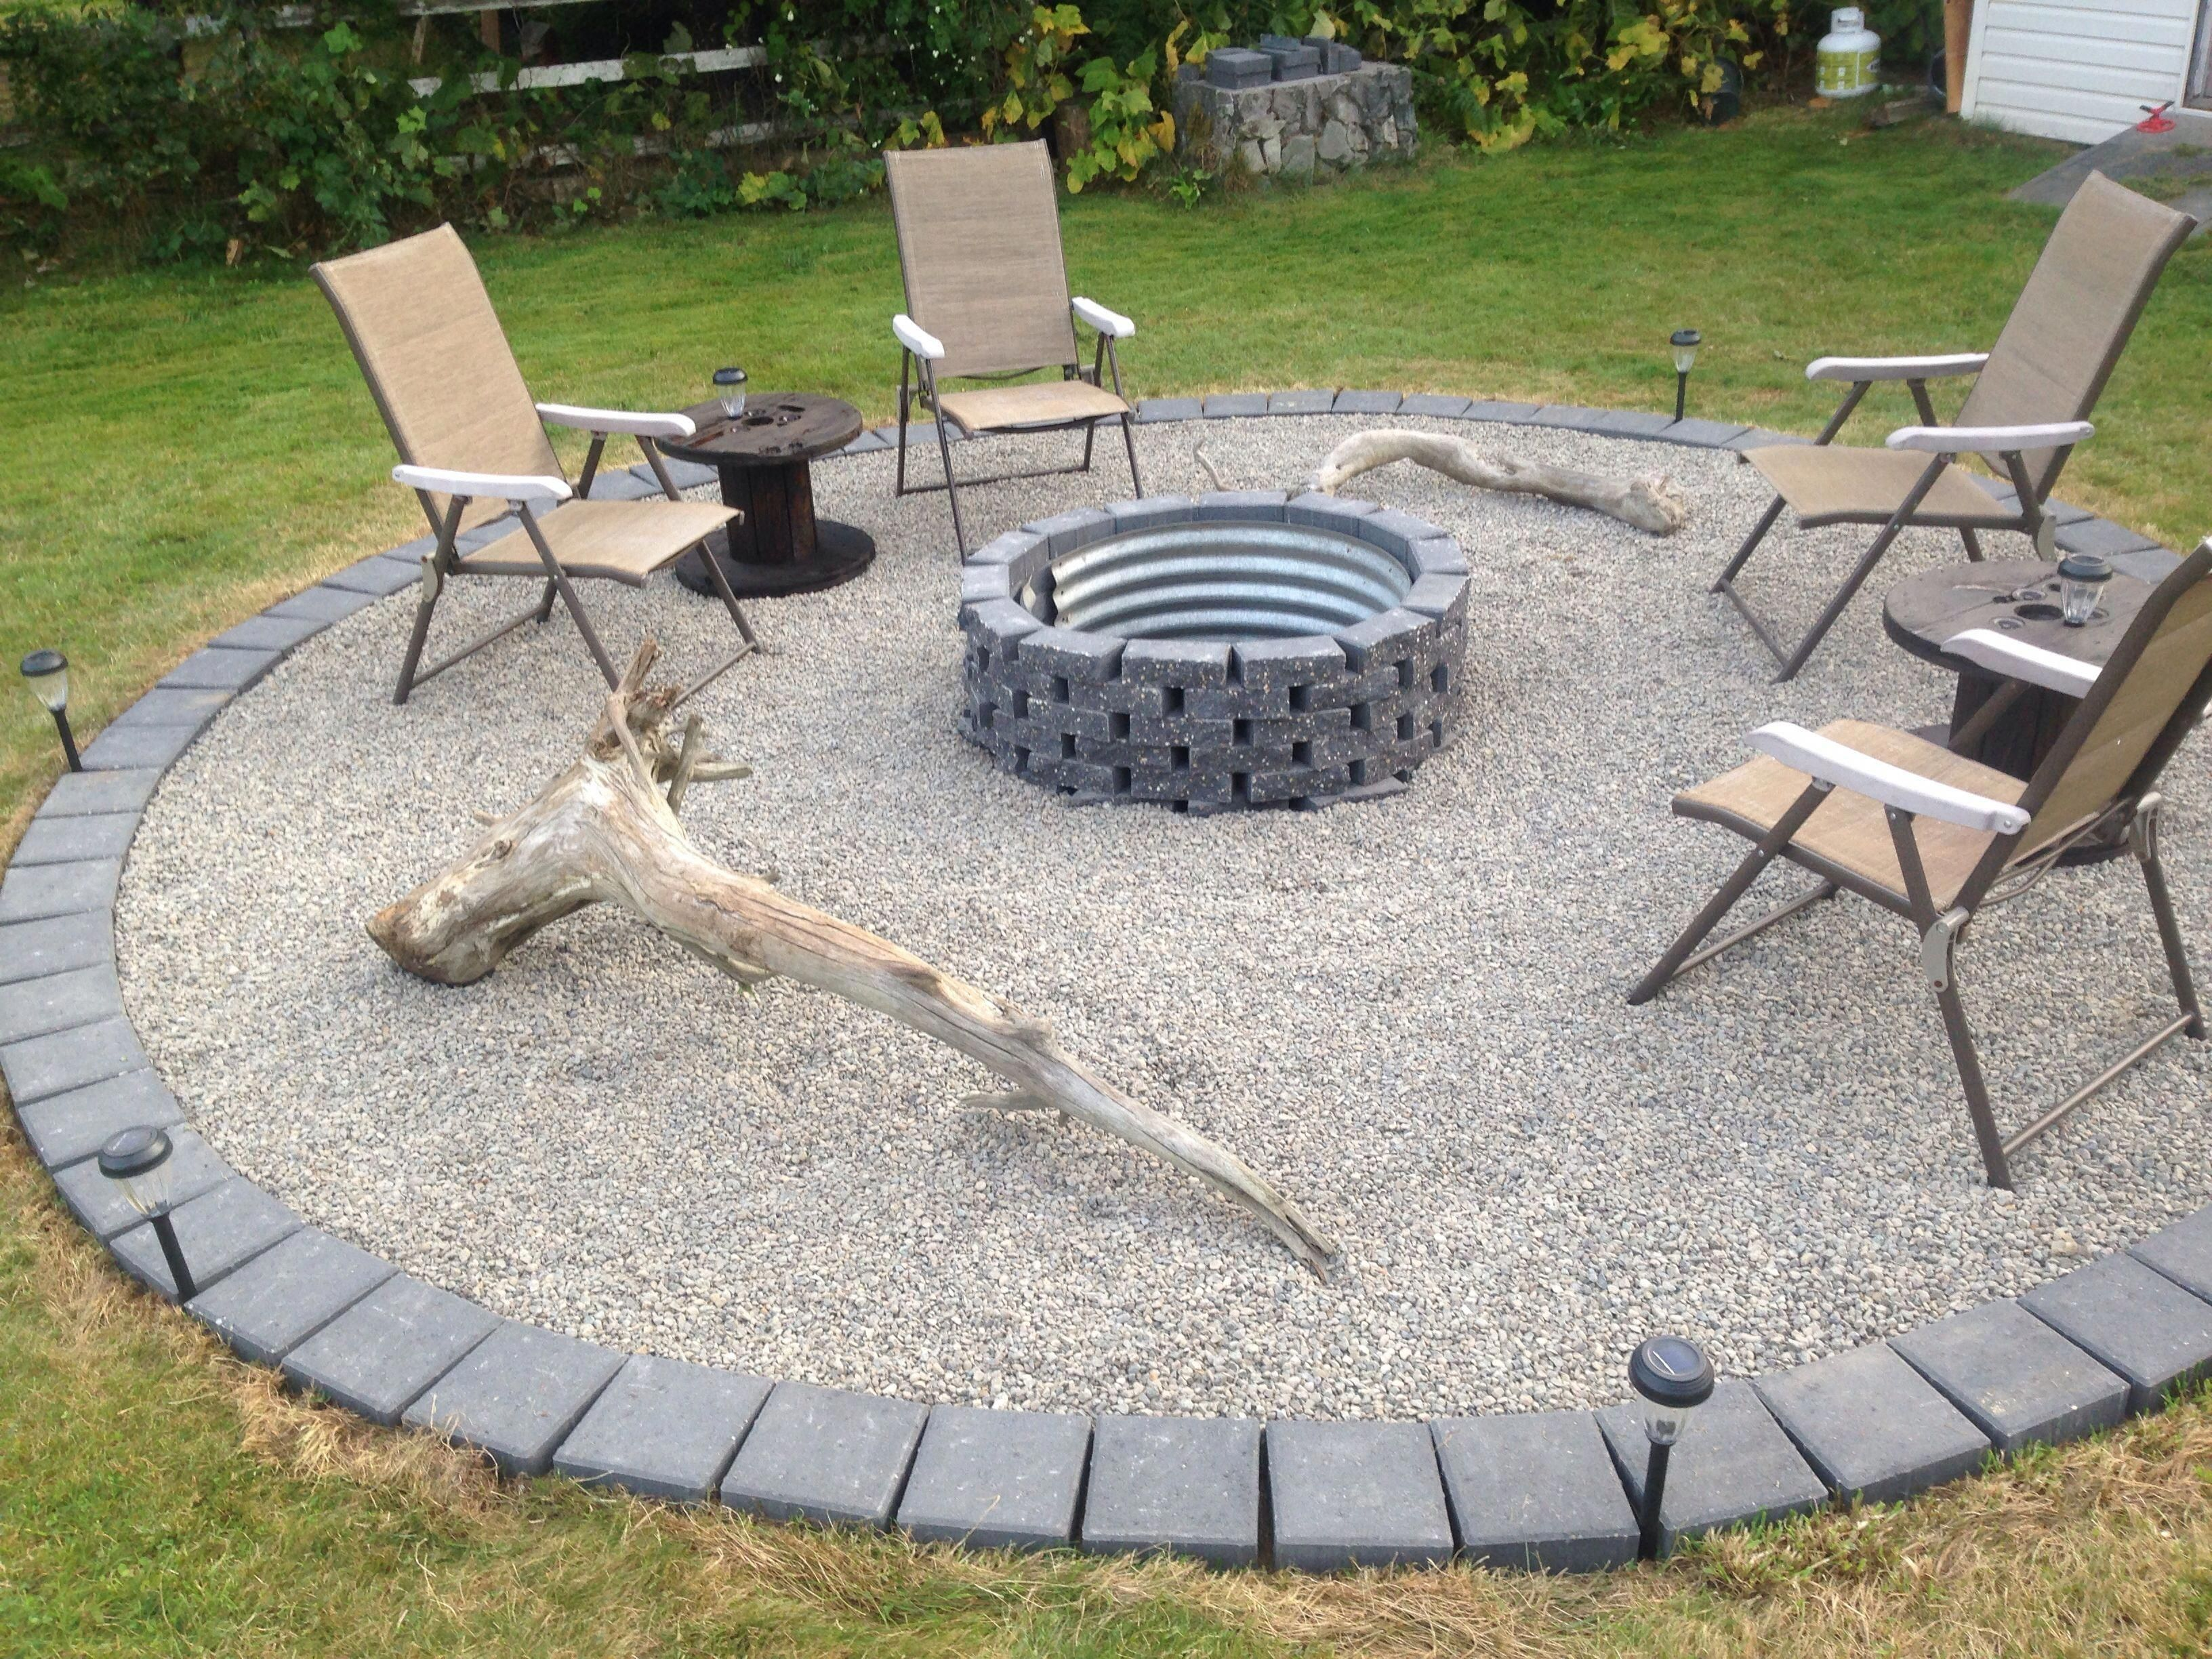 64 Diy Small Firepit Ideas For Outdoor To Wram Family